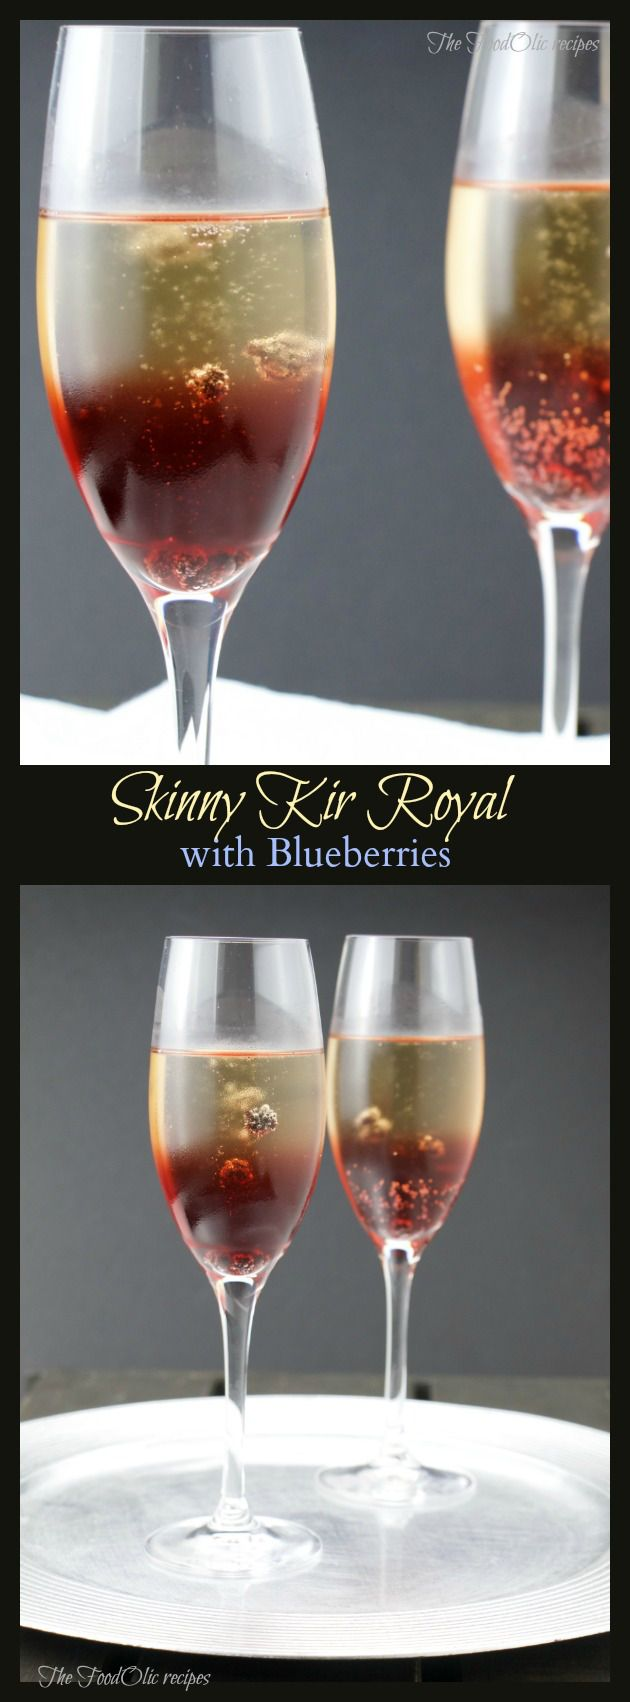 SkinnyKir Royal with blueberries is an elegantand tasty way to break the ice before dinner. It's an aperitif from France, although usually it's made out of creme de cassis which is a …